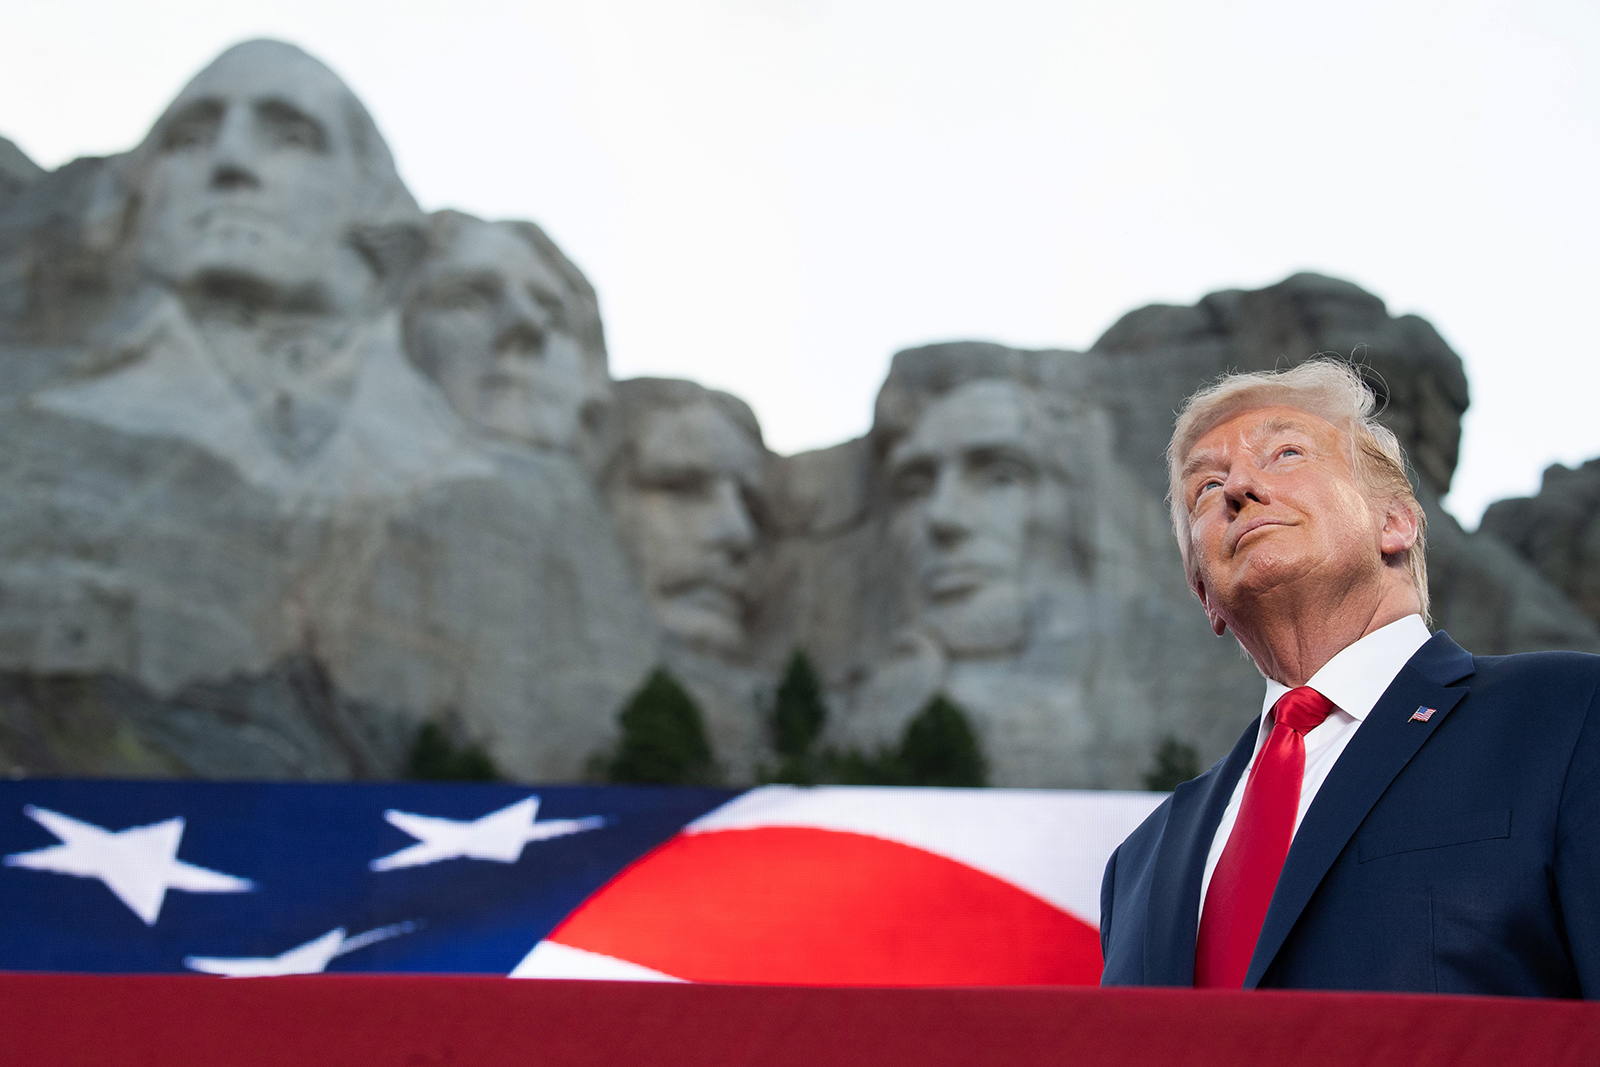 Donald Trump arrives for the Independence Day events at Mount Rushmore National Memorial in Keystone, South Dakota, July 3, 2020. (SAUL LOEB/AFP via Getty Images)